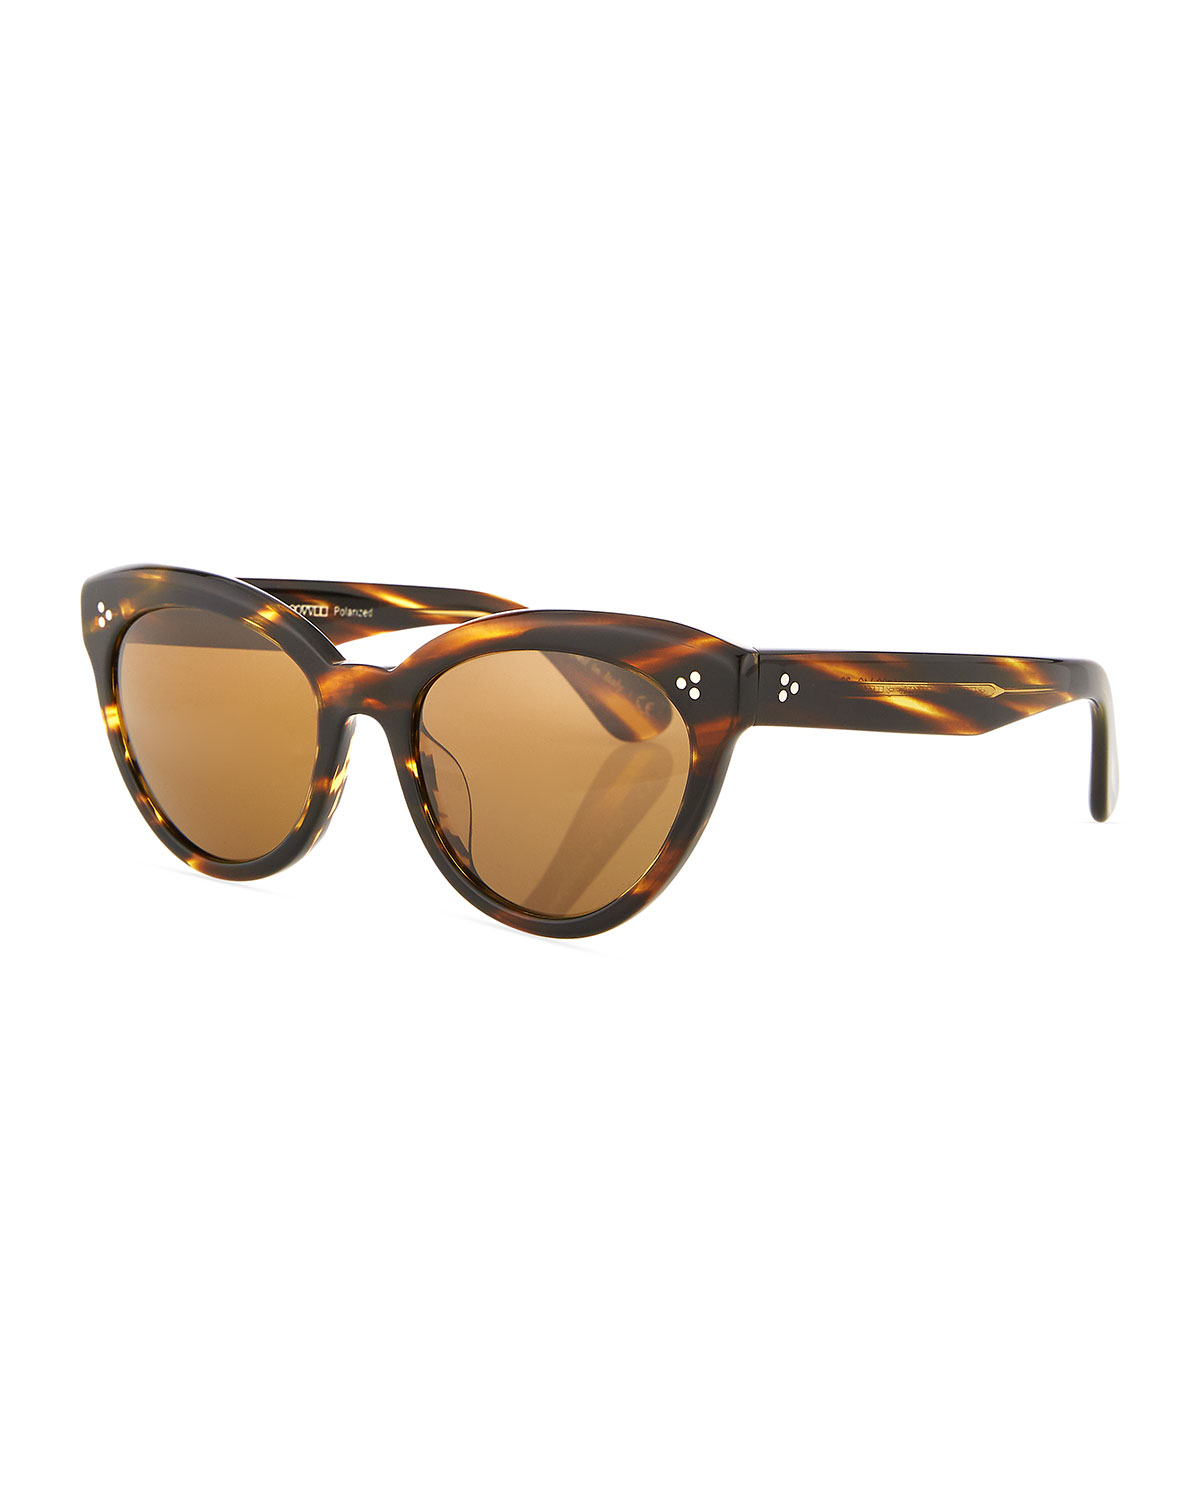 Oliver Peoples Roella Cellulose Acetate Cat-Eye Sunglasses